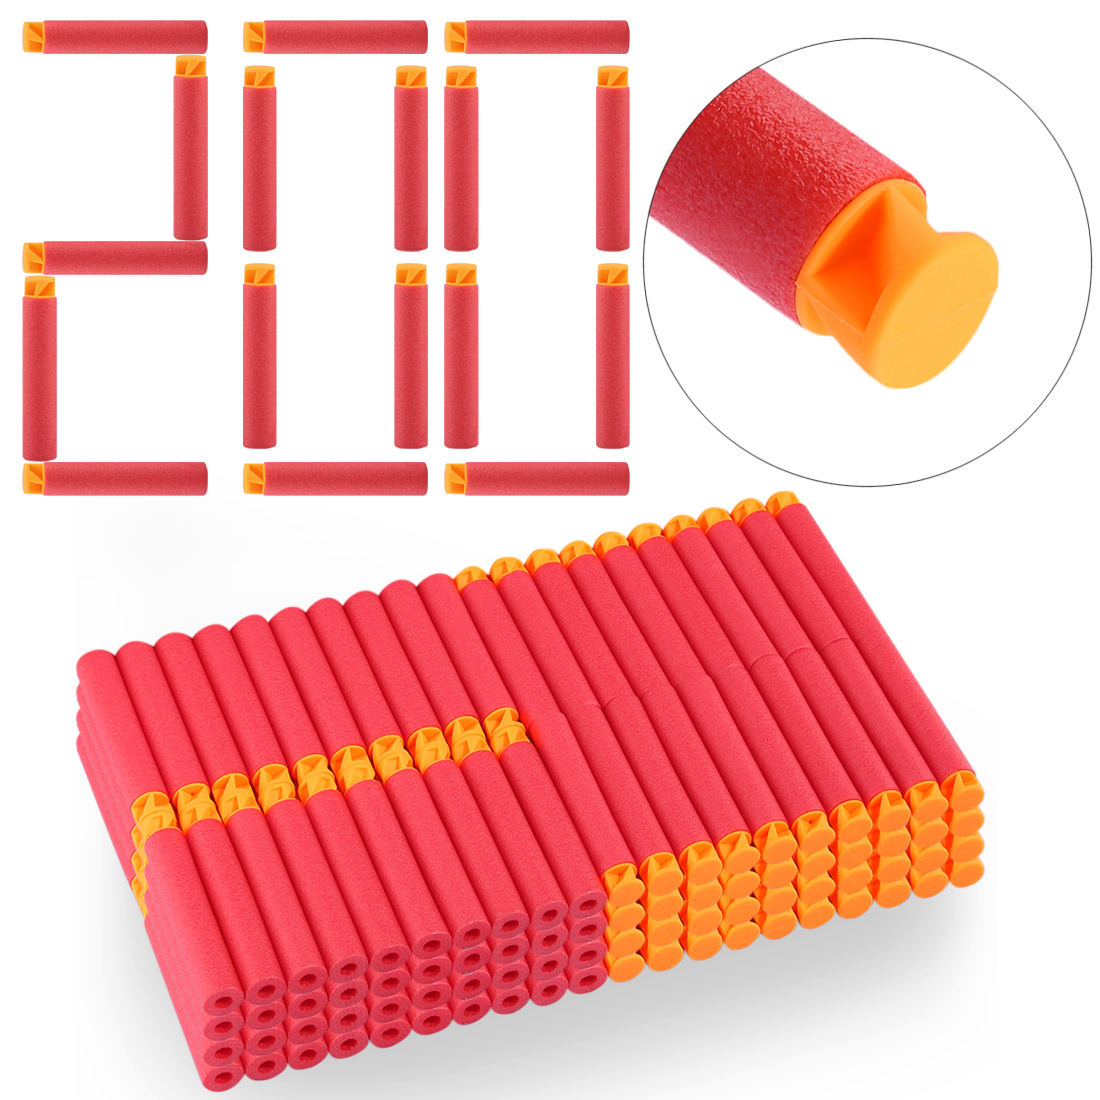 200PCS For Nerf Bullets Soft Flat Head 7.2cm Refill Darts Toy Bullets For Nerf Series Blasters Kid Children Christmas Gifts